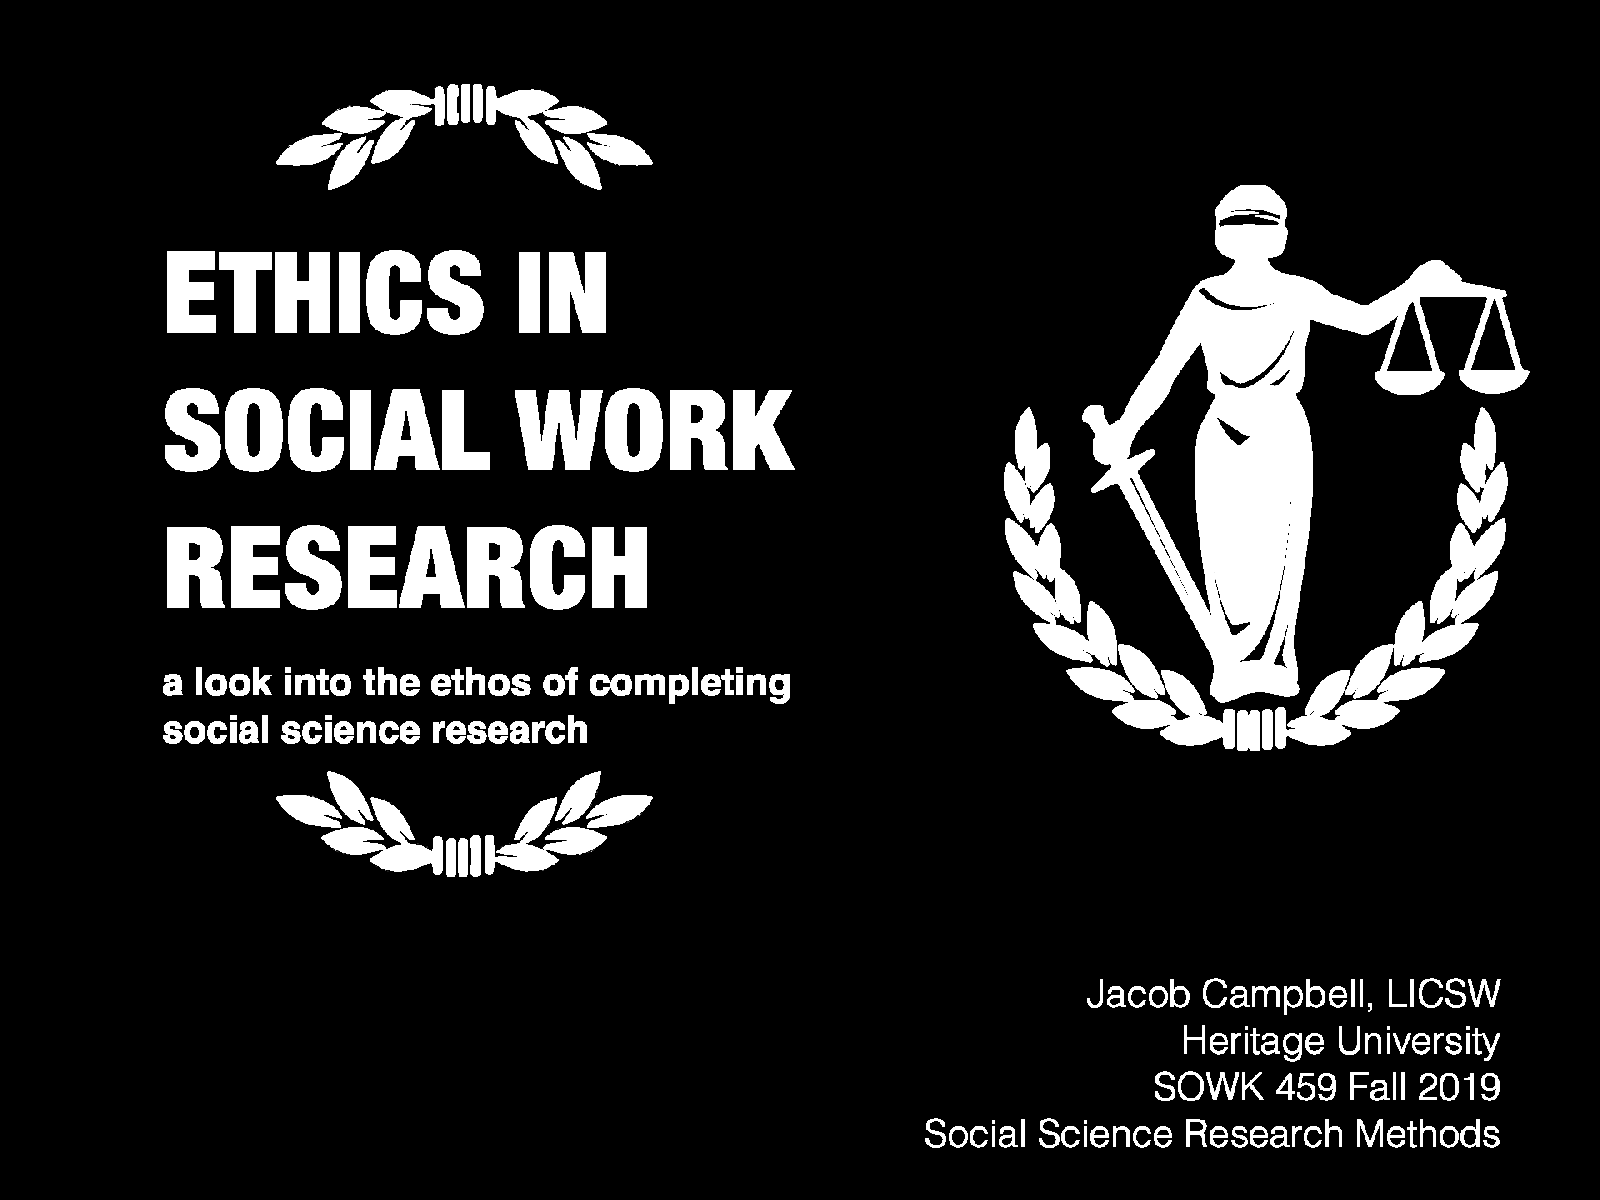 Week 03 - Ethics in Social Work Research